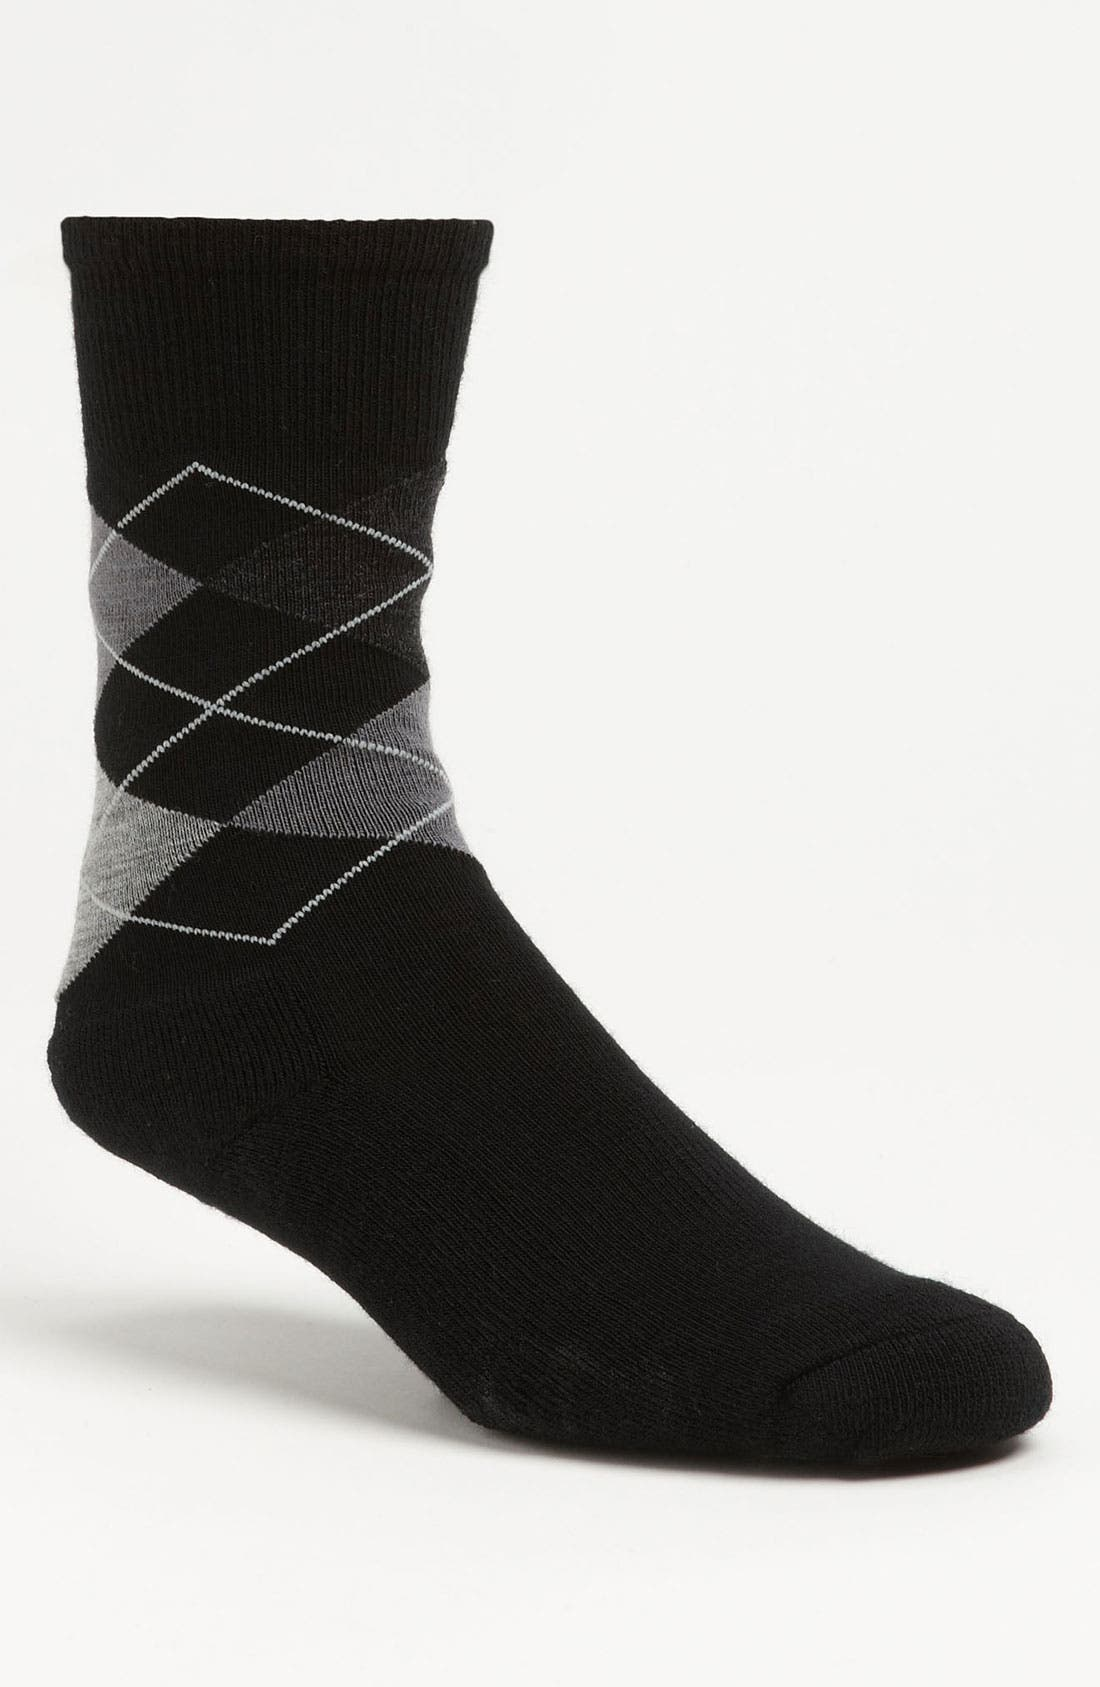 Alternate Image 1 Selected - Smartwool 'Diamond Jim' Socks